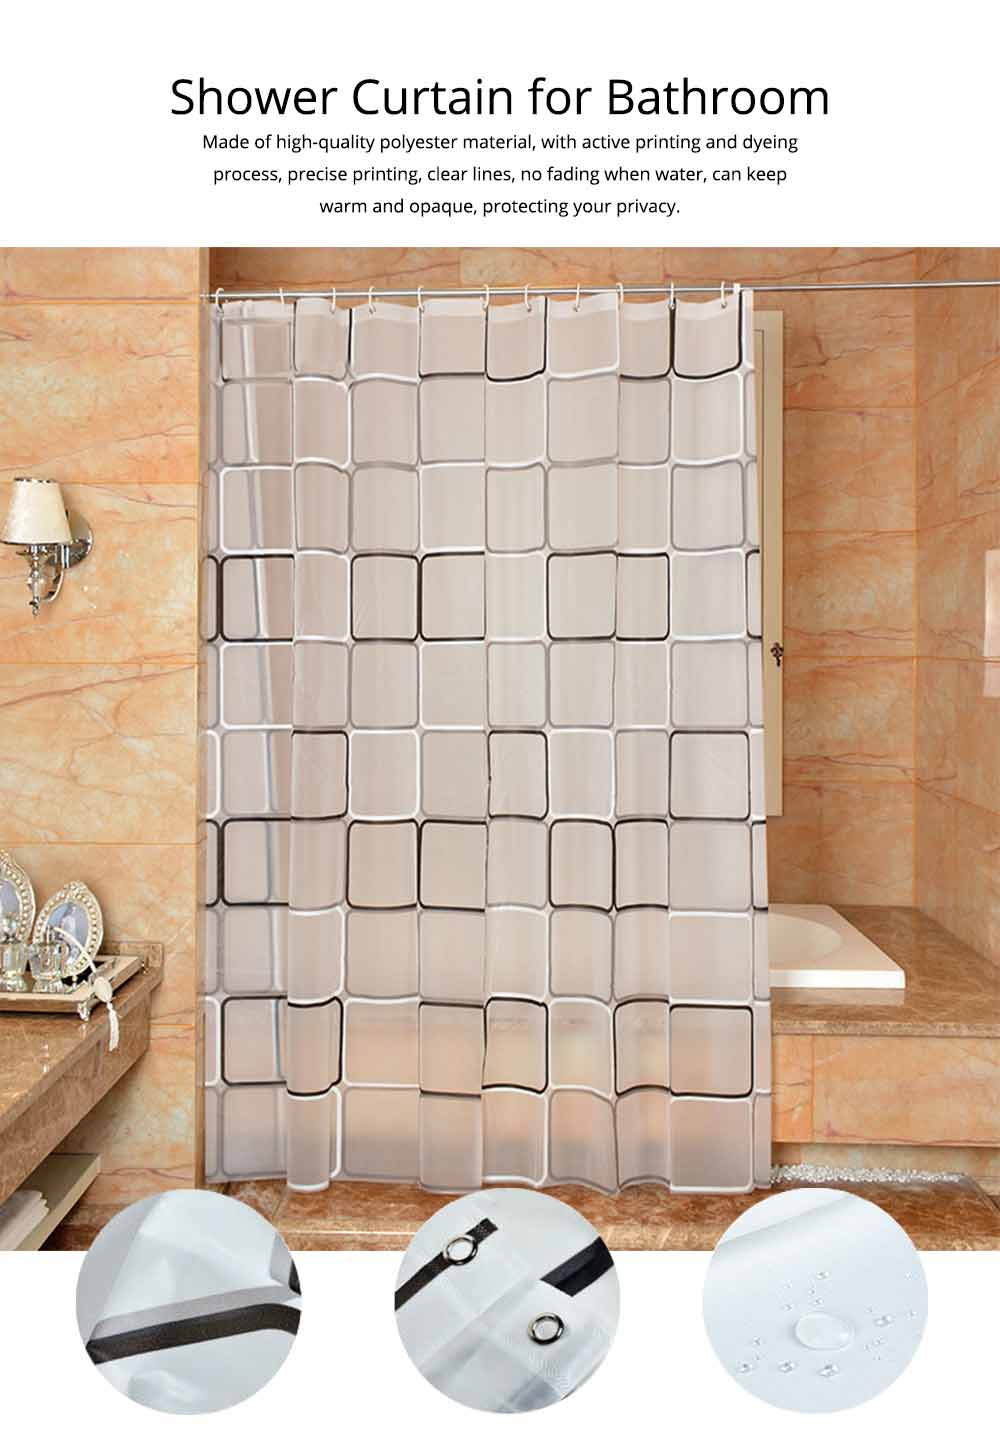 Checkered Bathroom Shower Curtain PEVA Environmental Protection Bathroom Curtain 0